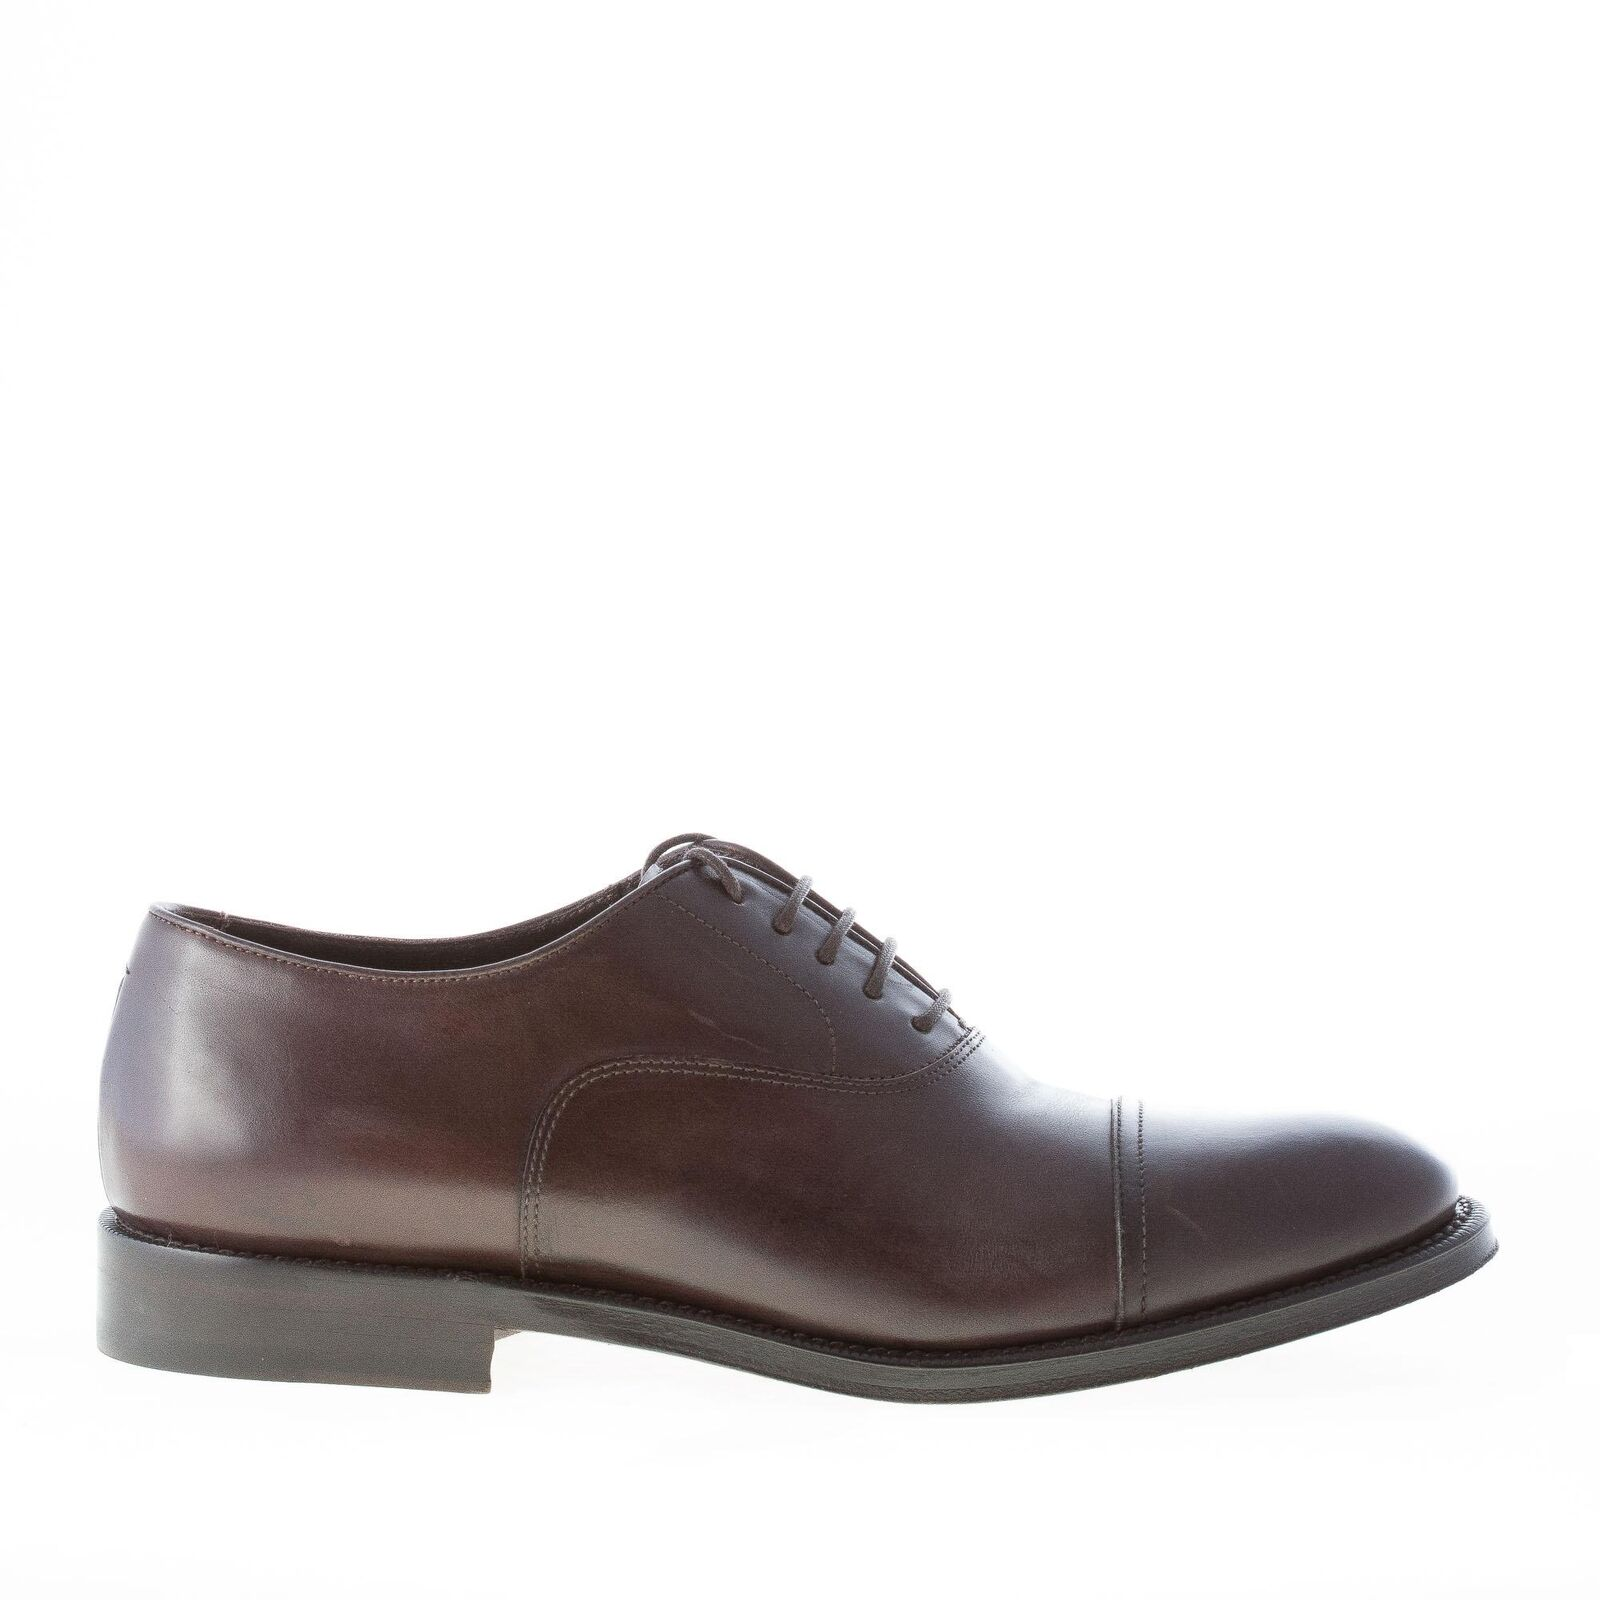 MIGLIORE men shoes Dark brown leather oxford lace up round cap toe made in Italy